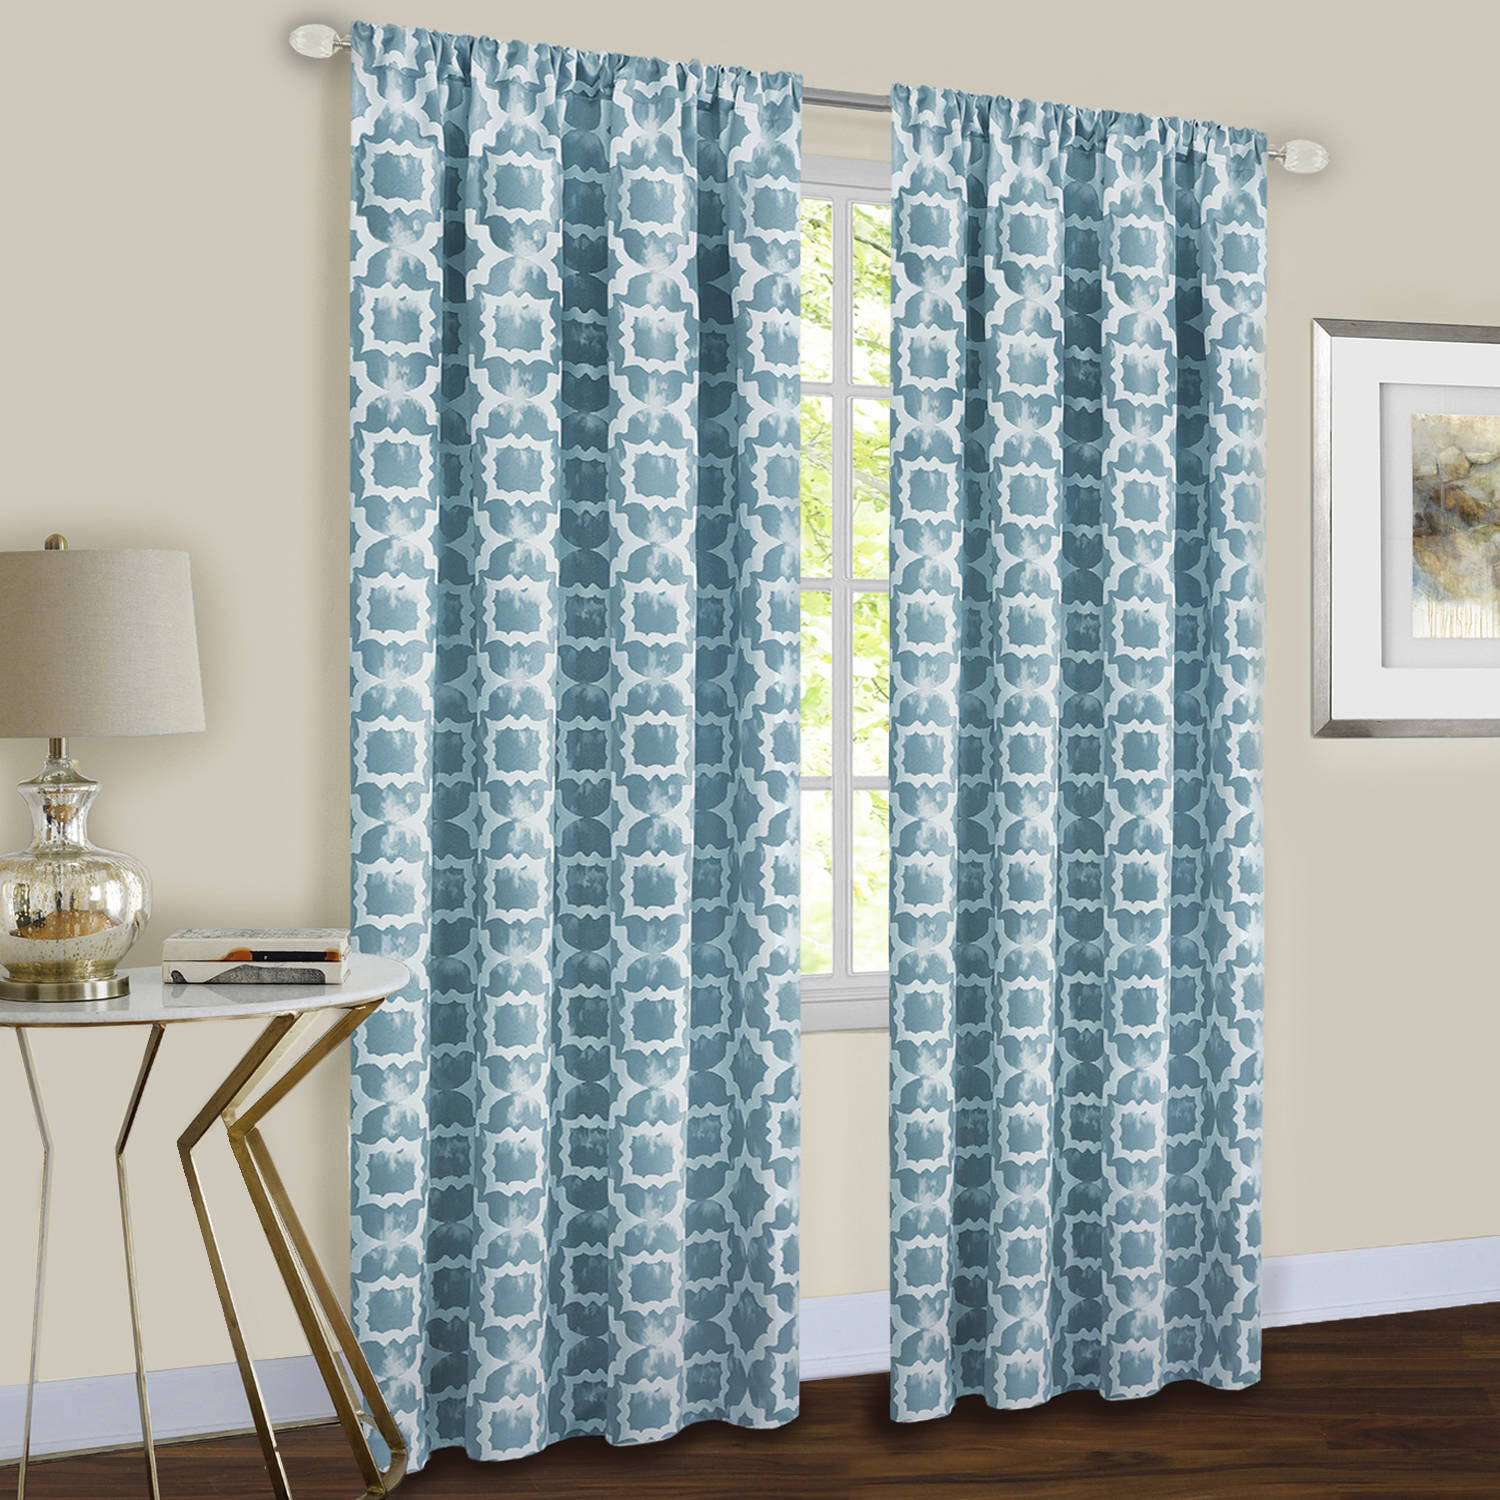 Crate and Barrel Curtains | Moroccan Curtains | Window Drapes